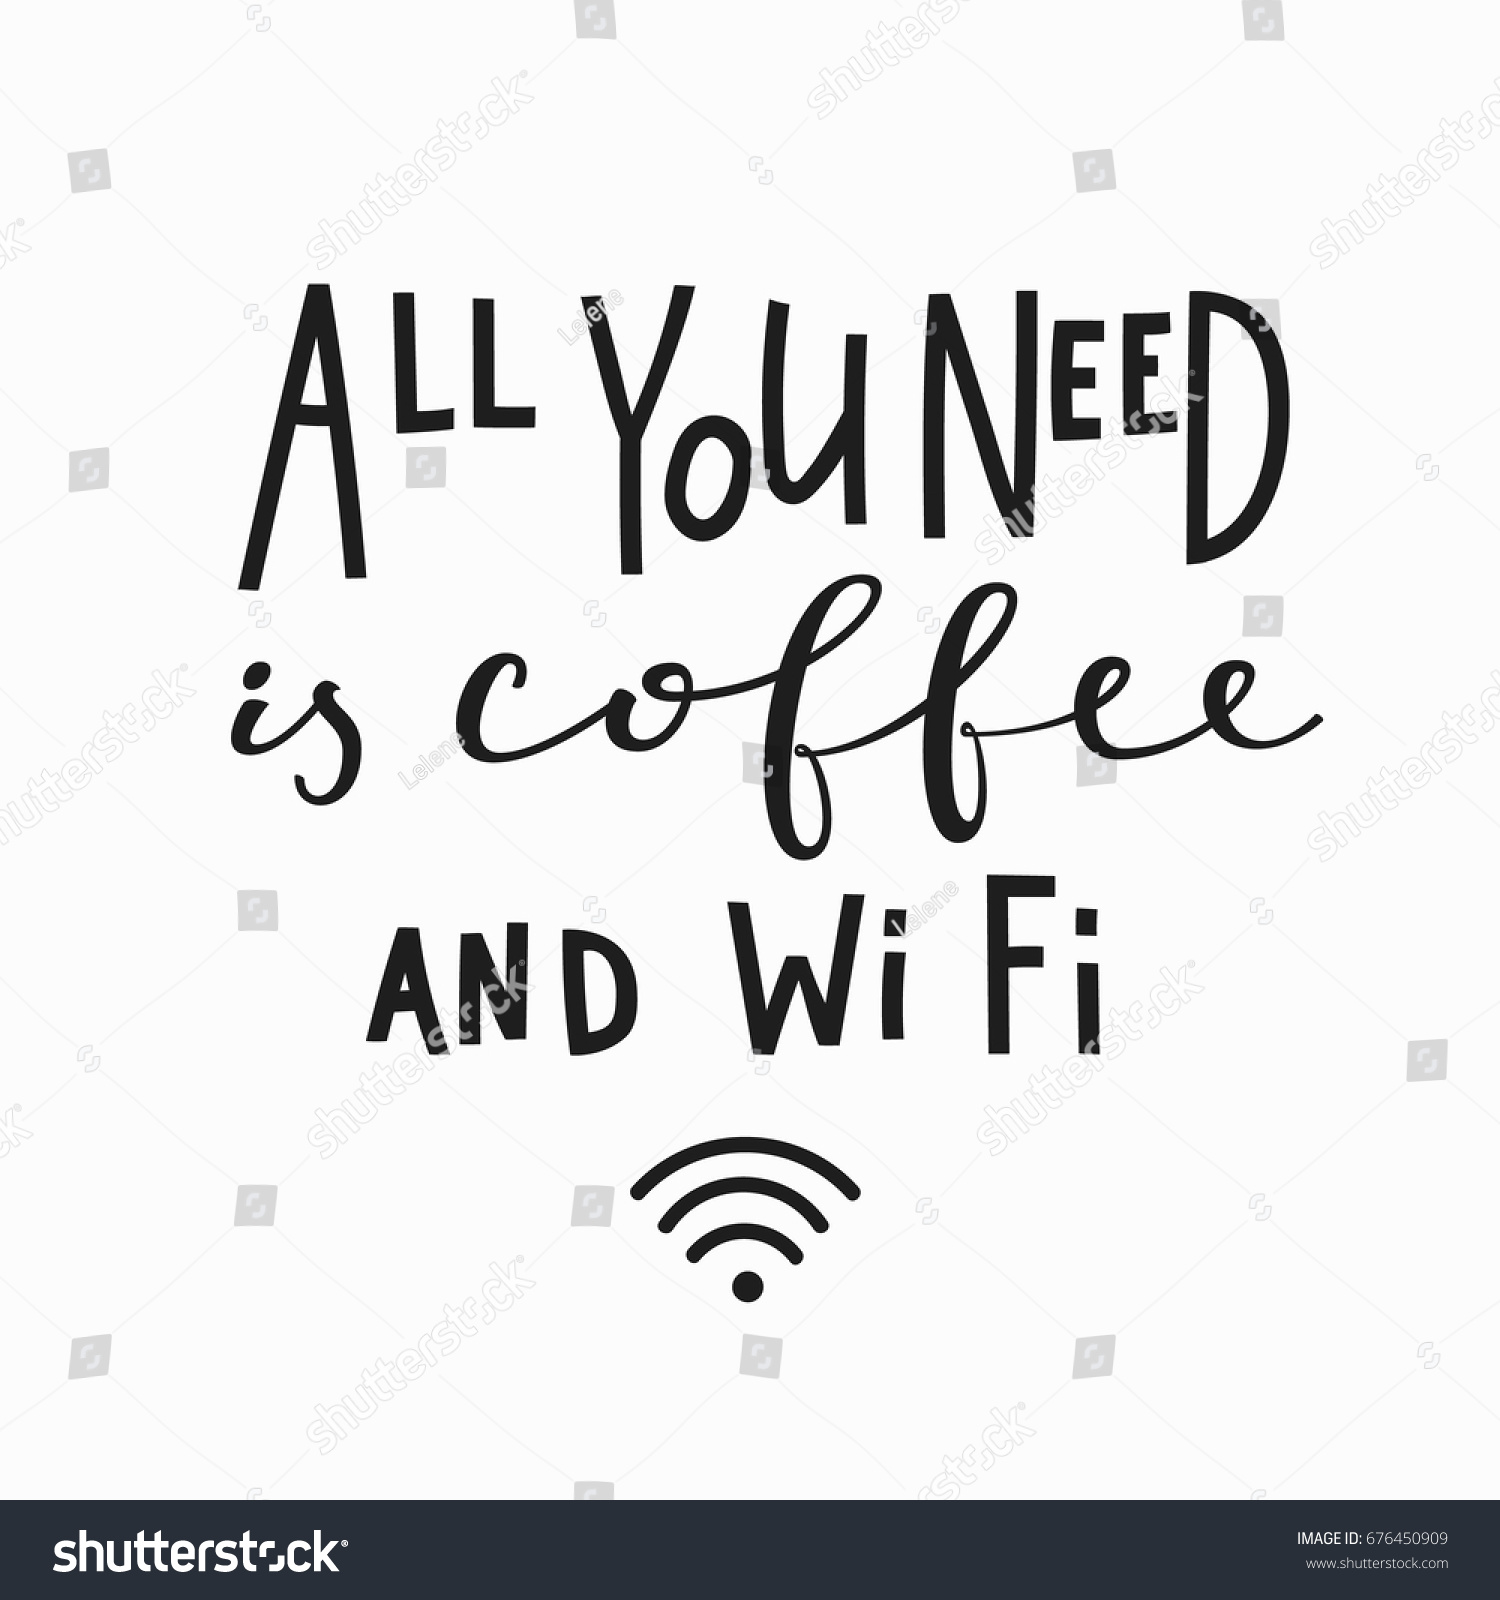 all you need coffee wi fi stock vector royalty free 676450909 Wi-Fi Plugs all you need is coffee and wi fi love romantic travel quote lettering calligraphy inspiration